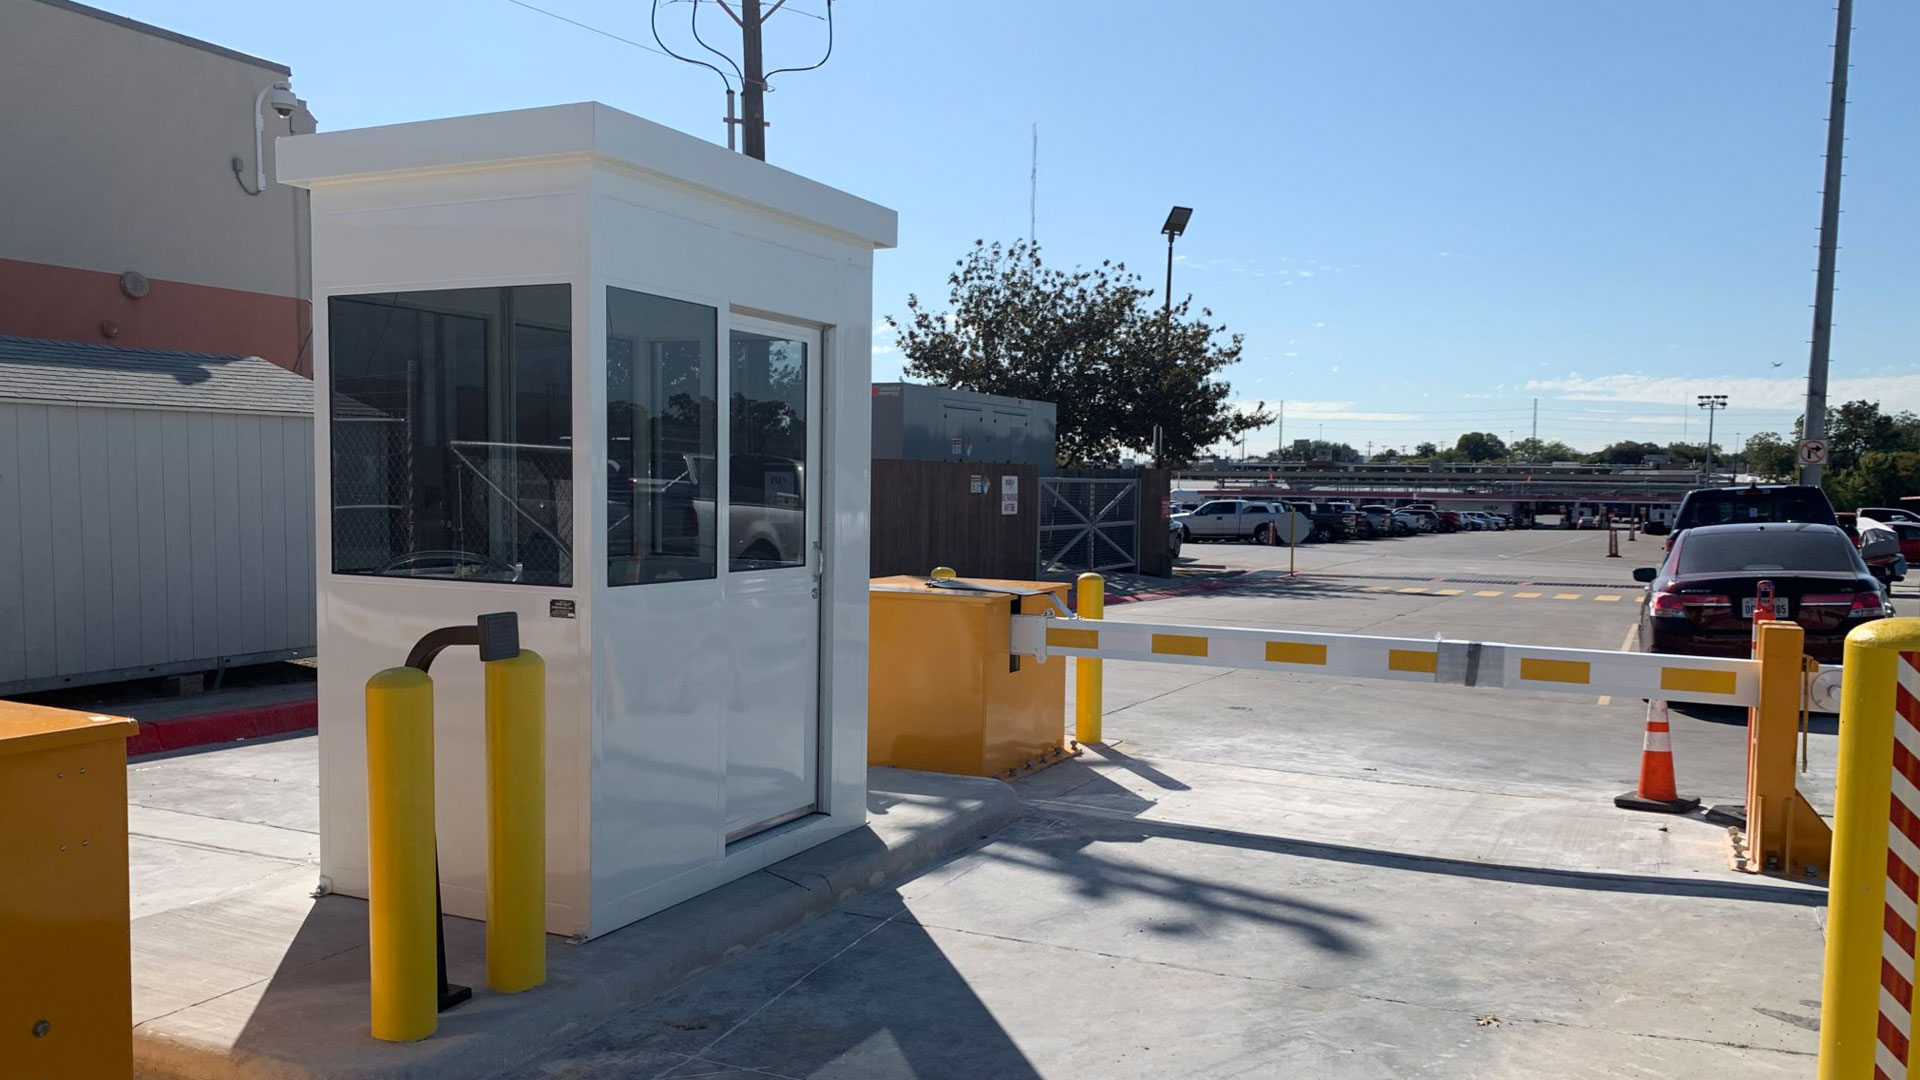 Access Control Booth